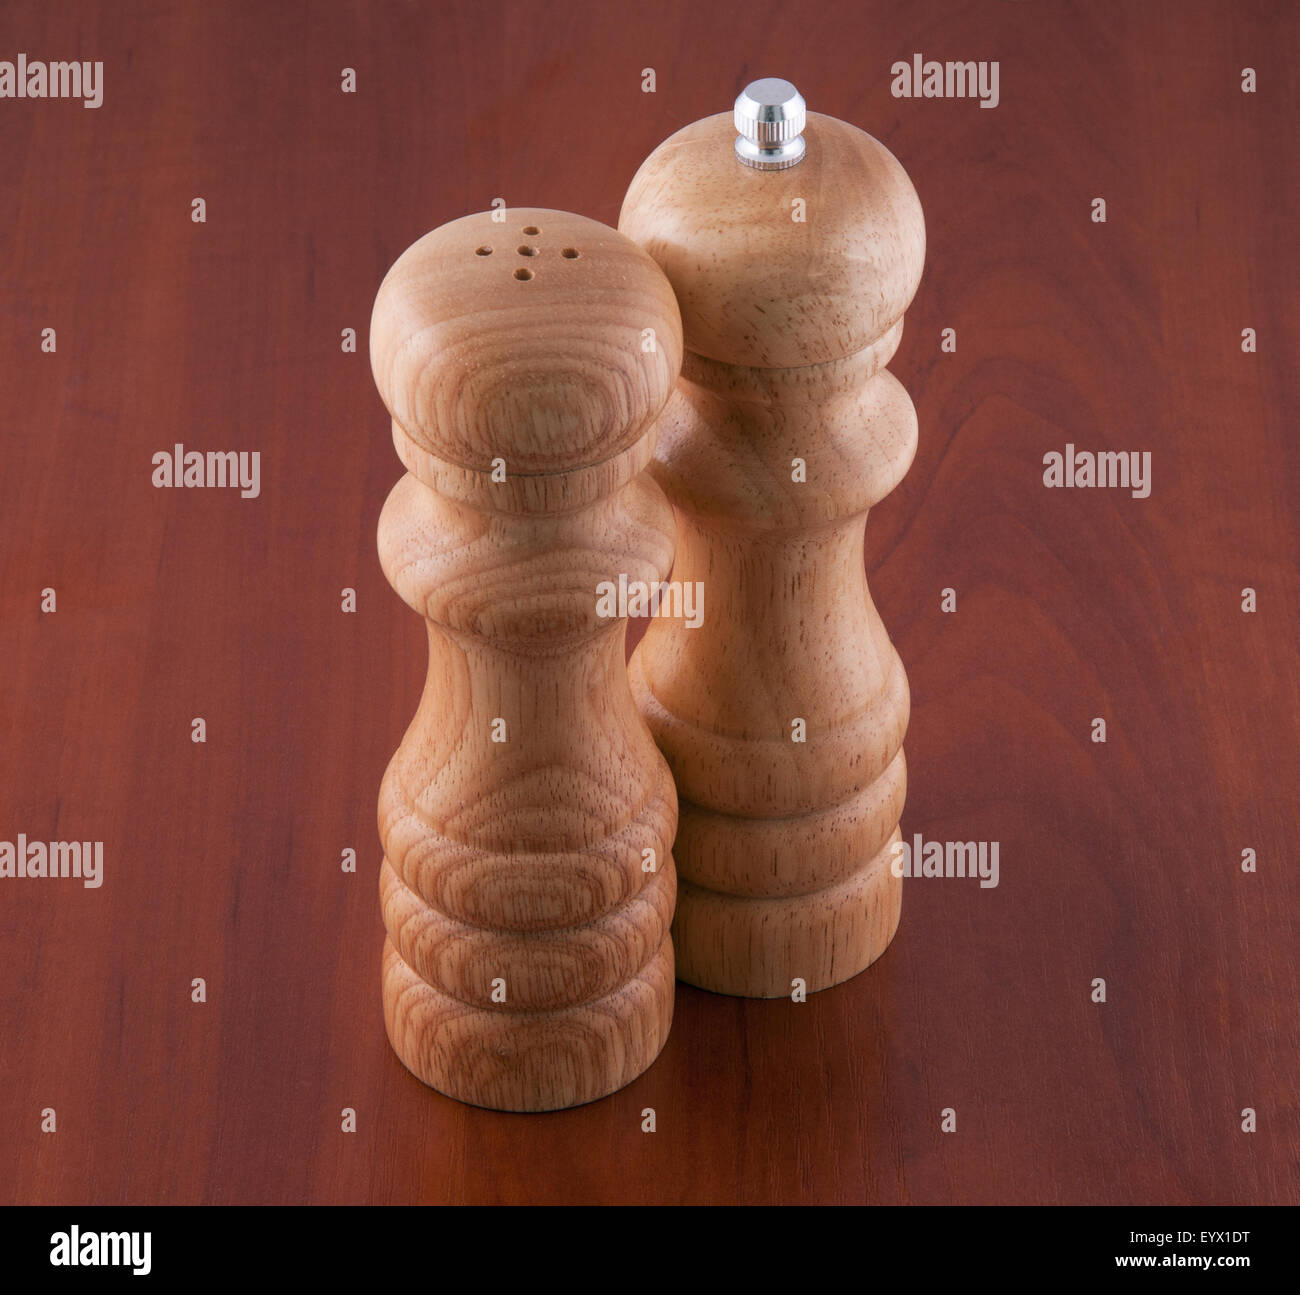 Salt-cellar and pepper-box on a table - Stock Image